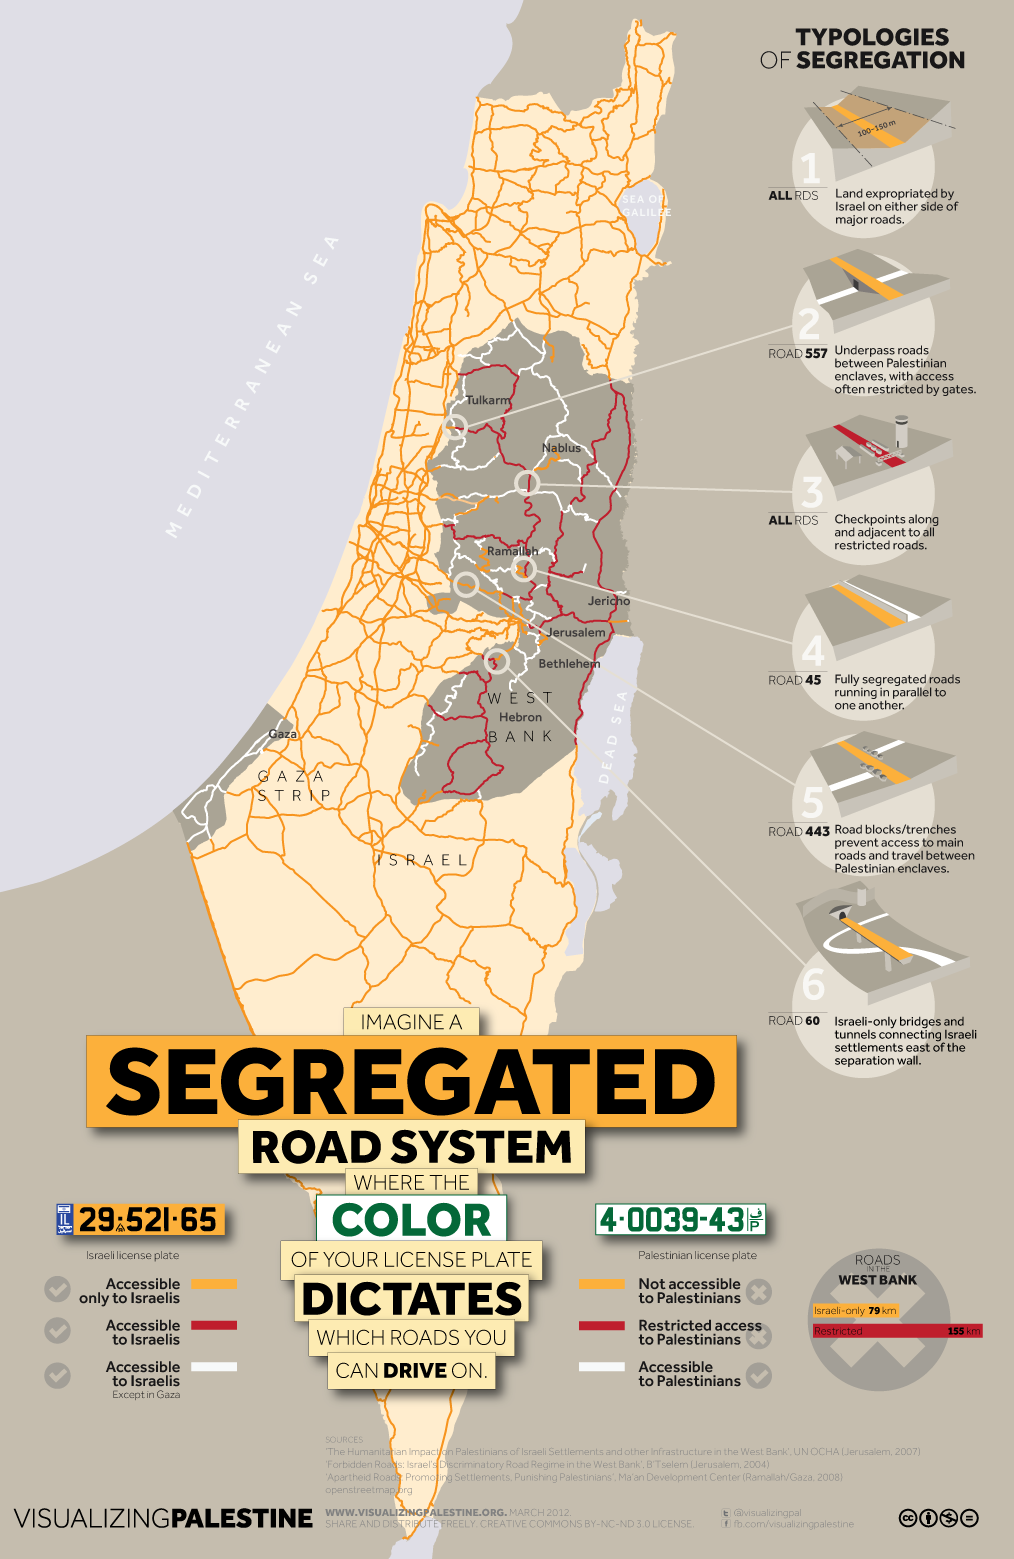 Israel's System of Segregated Roads in the Occupied Palestinian Territories